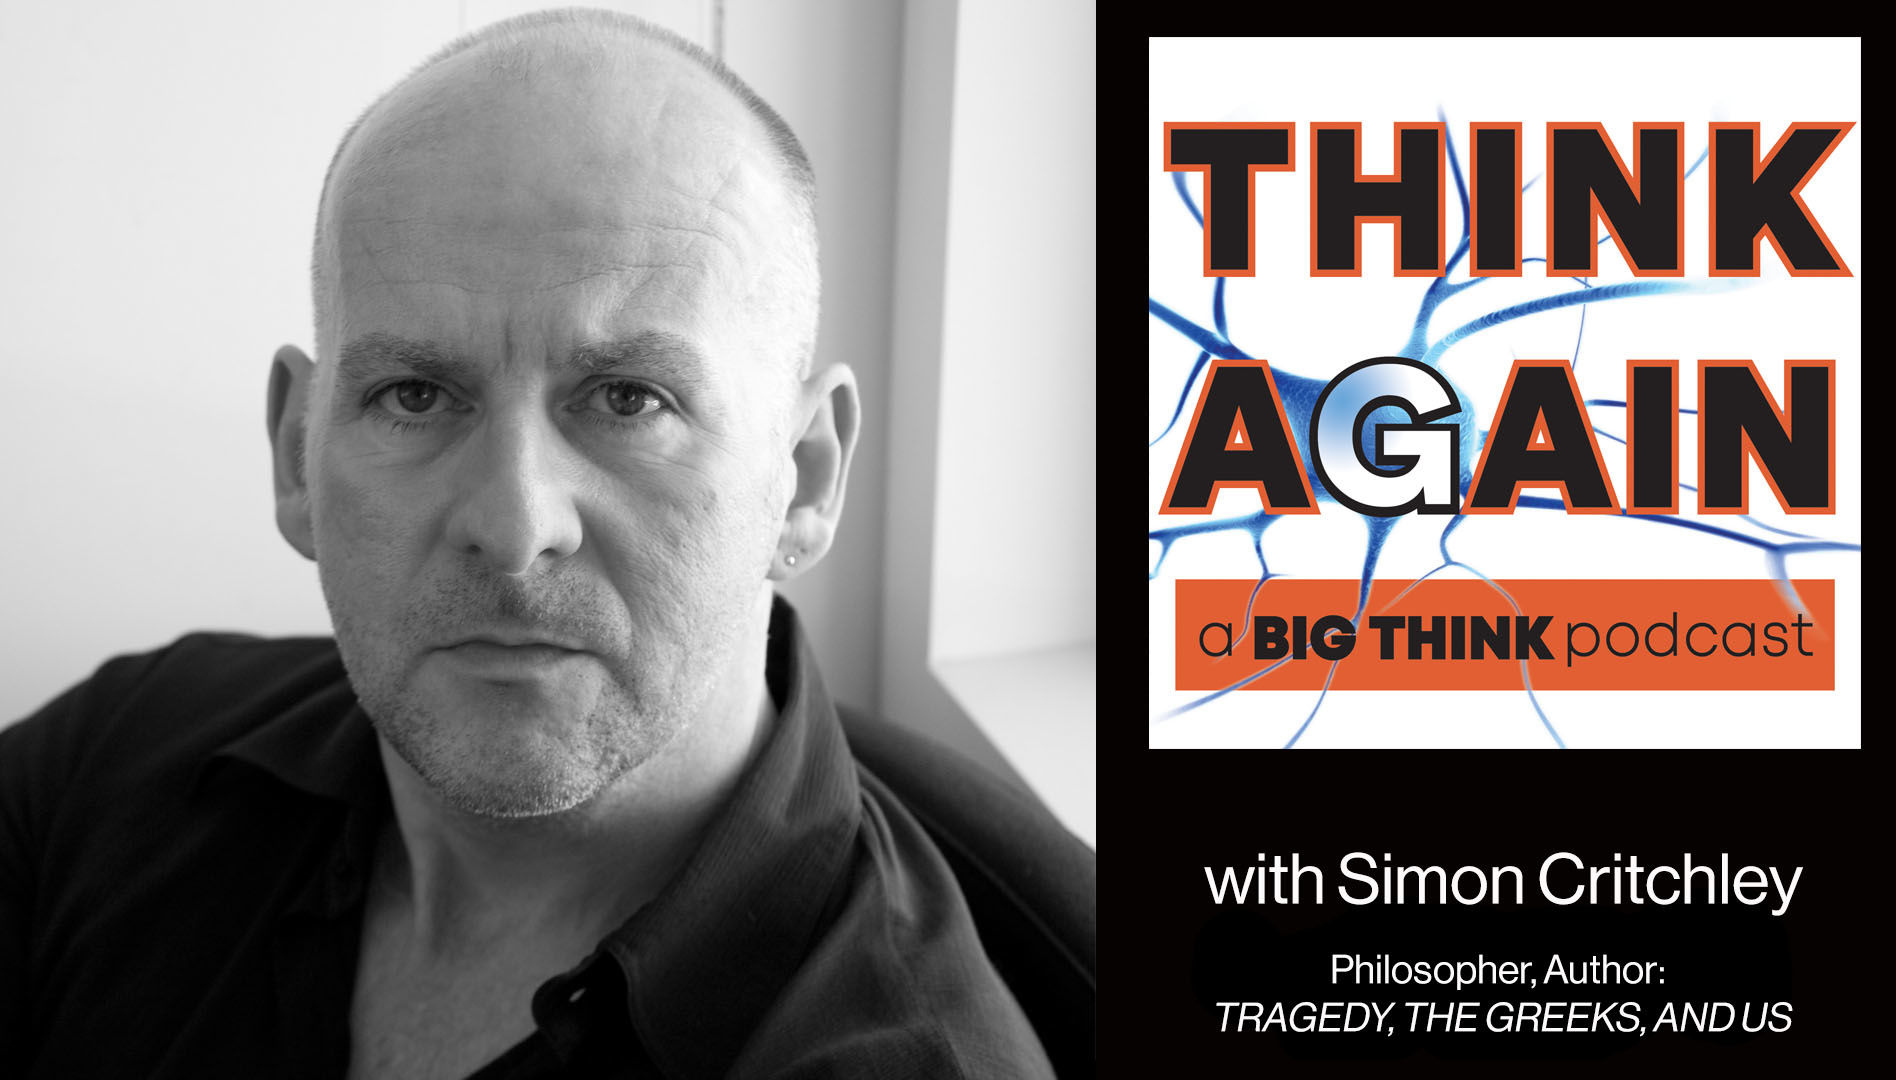 The philosophy of tragedy & the tragedy of philosophy - with Simon Critchley